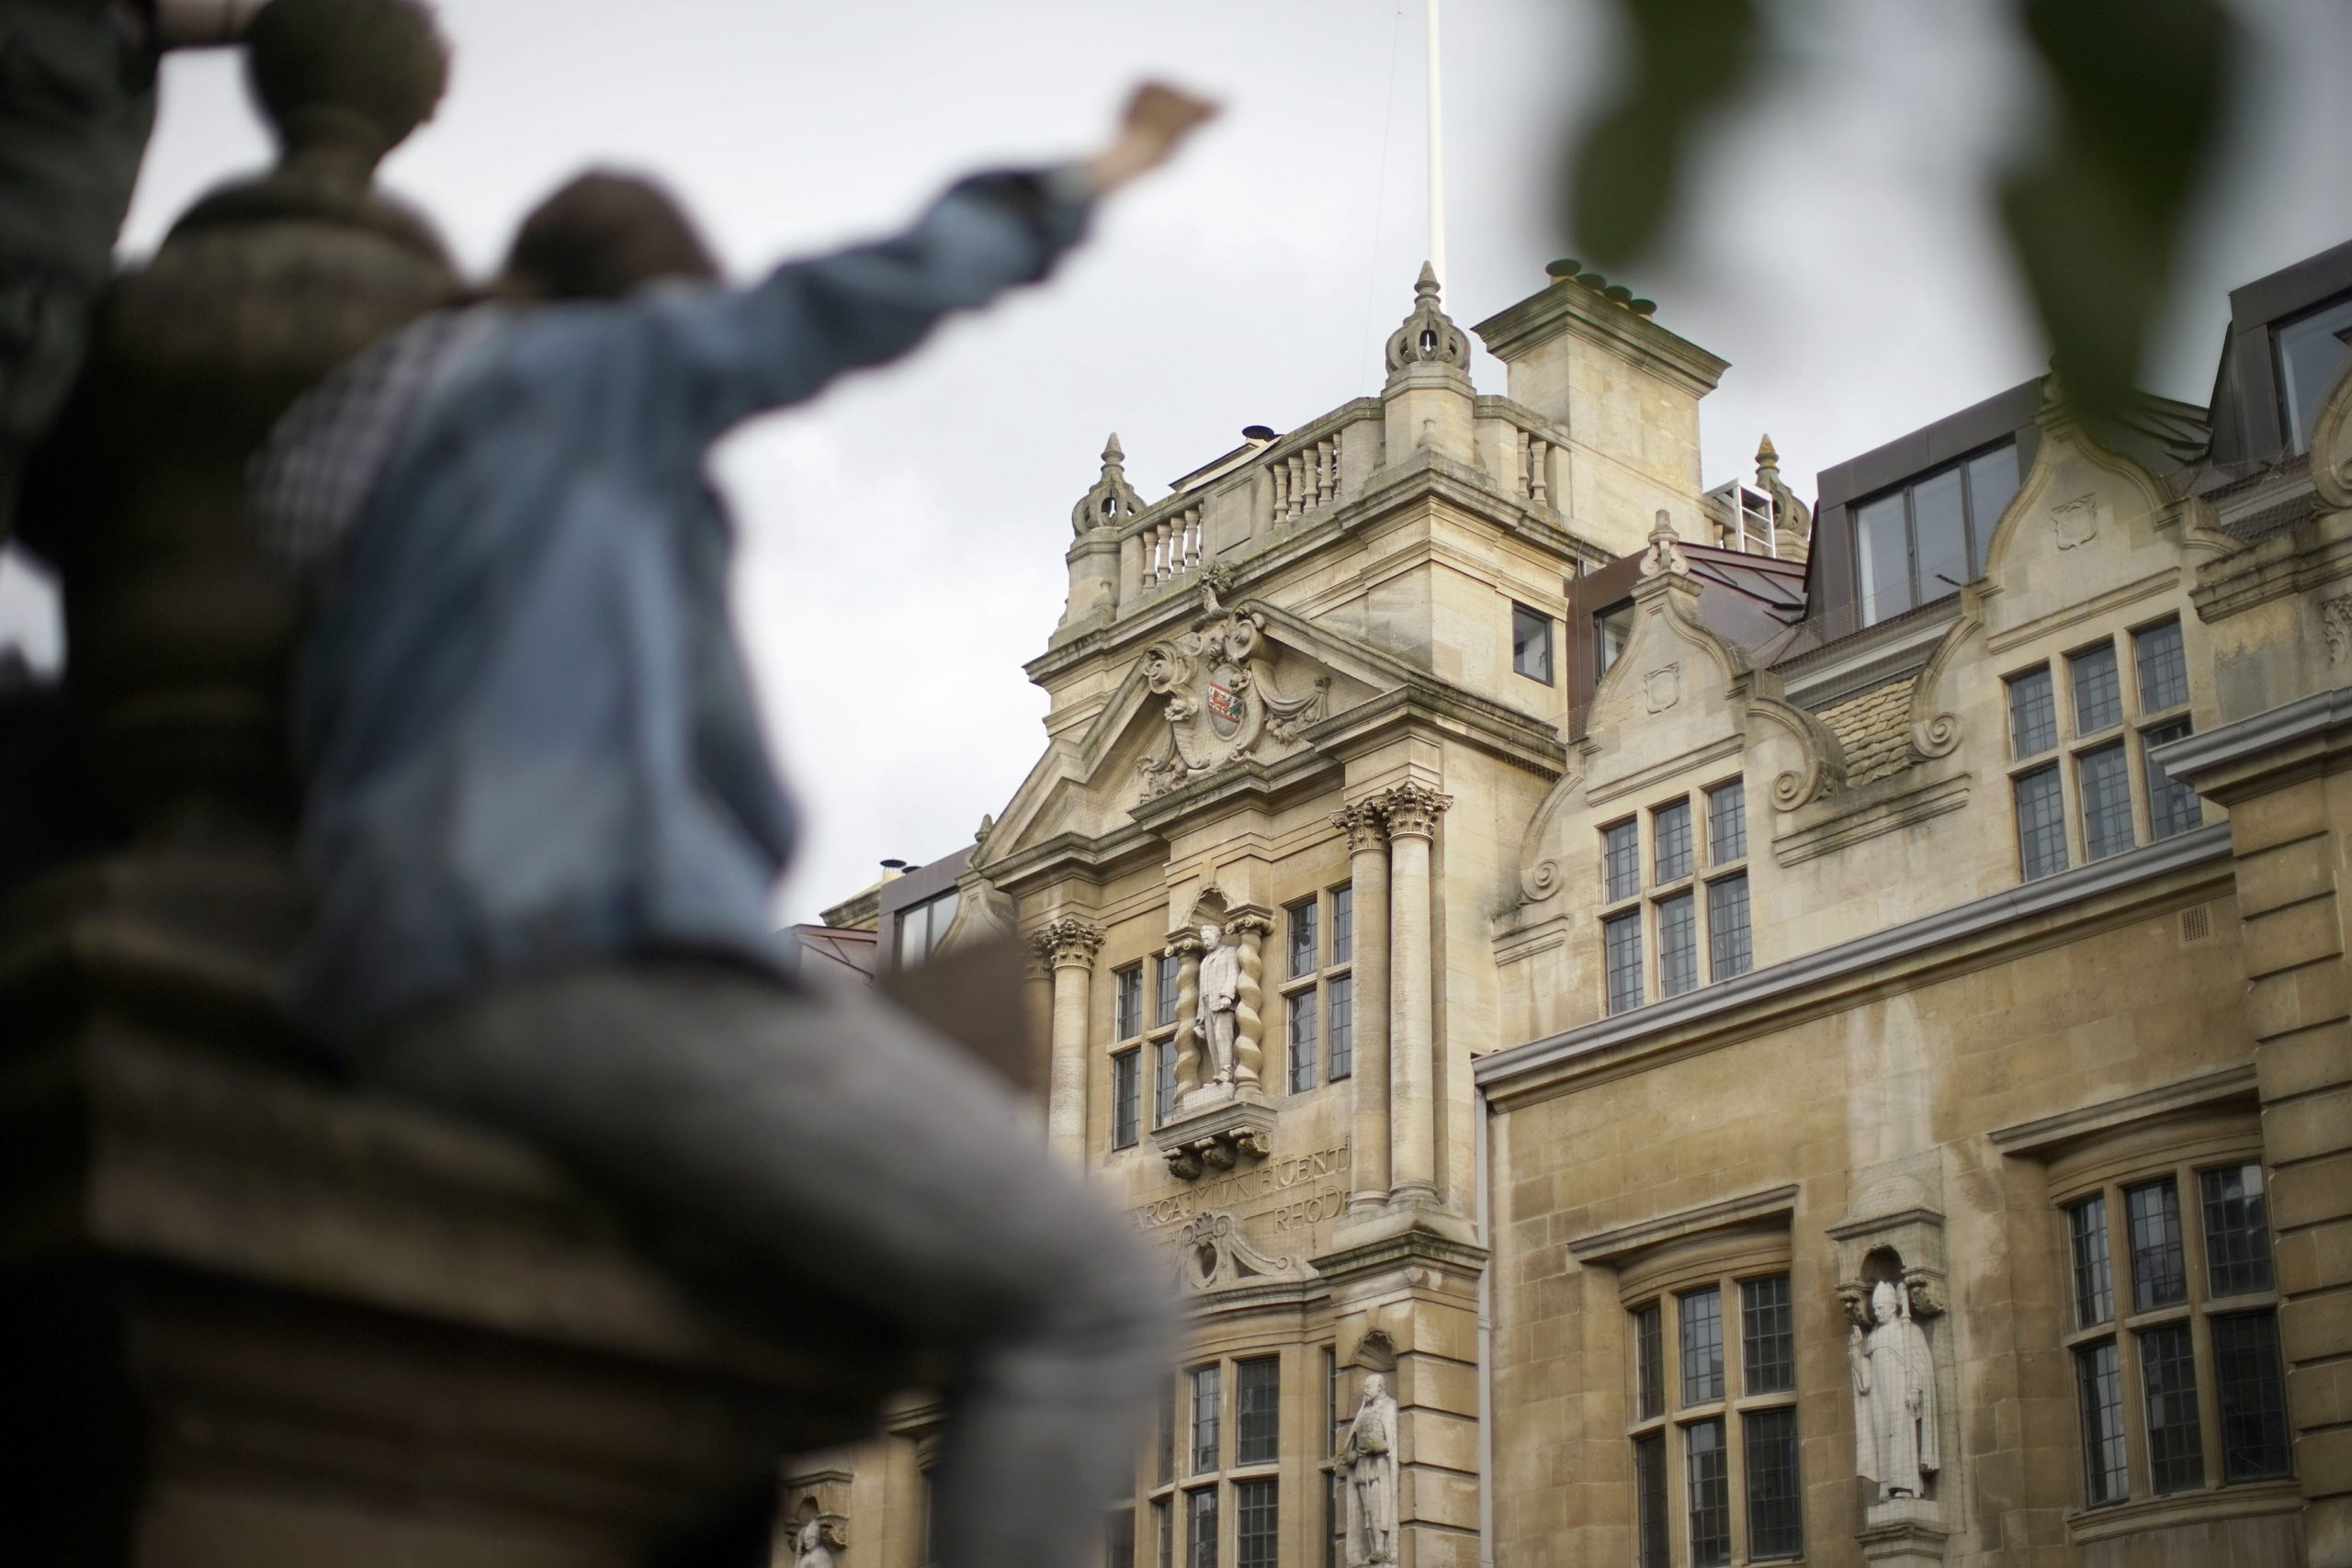 9 June 2020: Demonstrators gather outside University of Oxford's Oriel College during a protest called by the Rhodes Must Fall campaign in Oxford, England. (Photograph by Christopher Furlong/ Getty Images)